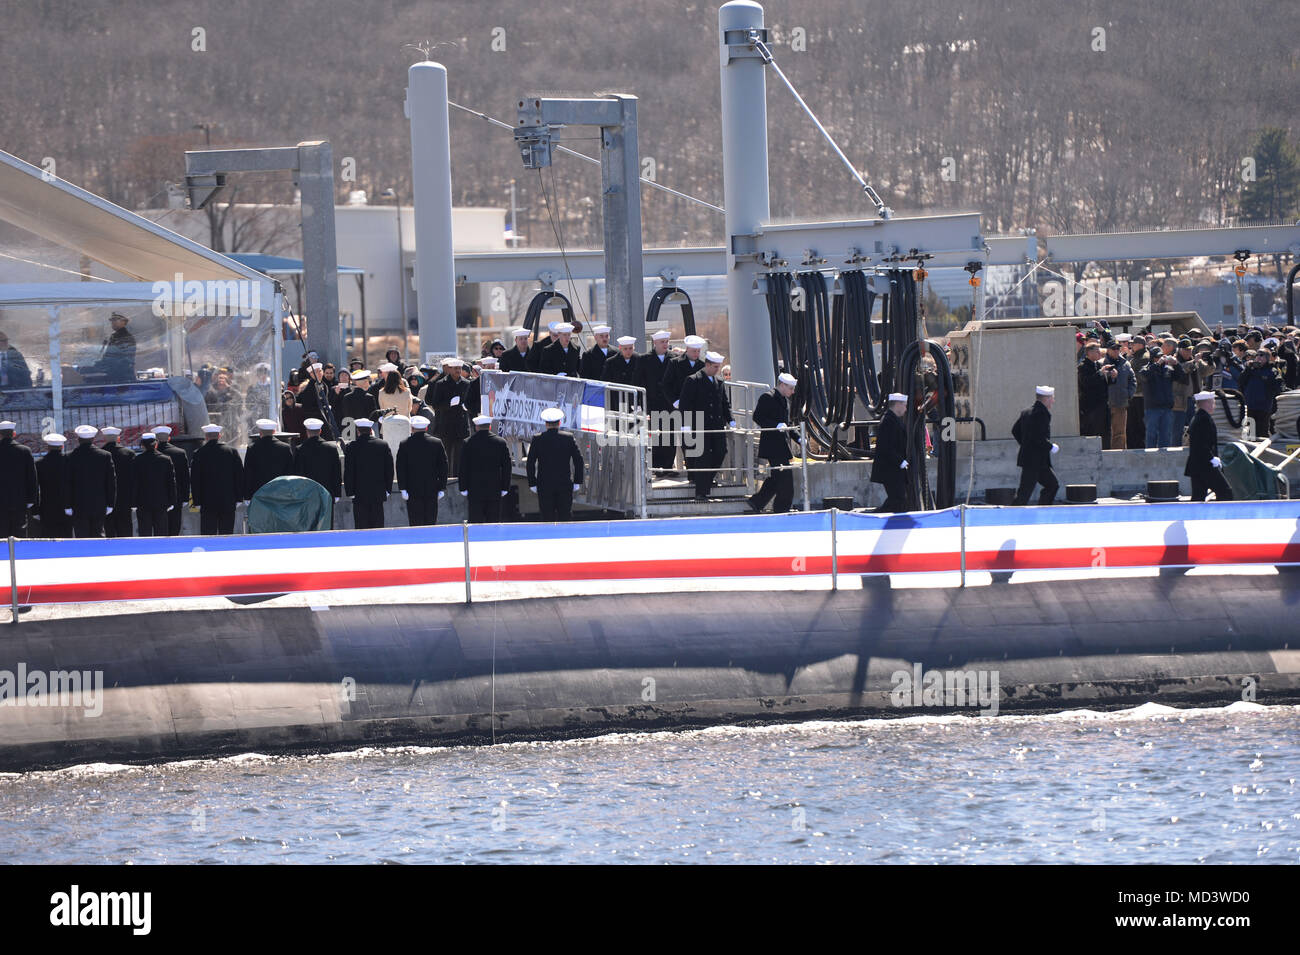 180317-N-LW591-022 GROTON, Conn. (Mar. 17, 2018) Annie Mabus announces 'Bring the Ship to Life' spurring its crew members to race across the brow and fall in formation aboard USS Colorado (SSN 788) during the commissioning ceremony on Naval Submarine Base New London, Mar. 17. USS Colorado is the U.S. Navy's 15th Virginia-Class attack submarine and the fourth ship named for the State of Colorado. (U.S. Navy photo by Mass Communication Specialist 1st Class Steven Hoskins/Released) - Stock Image